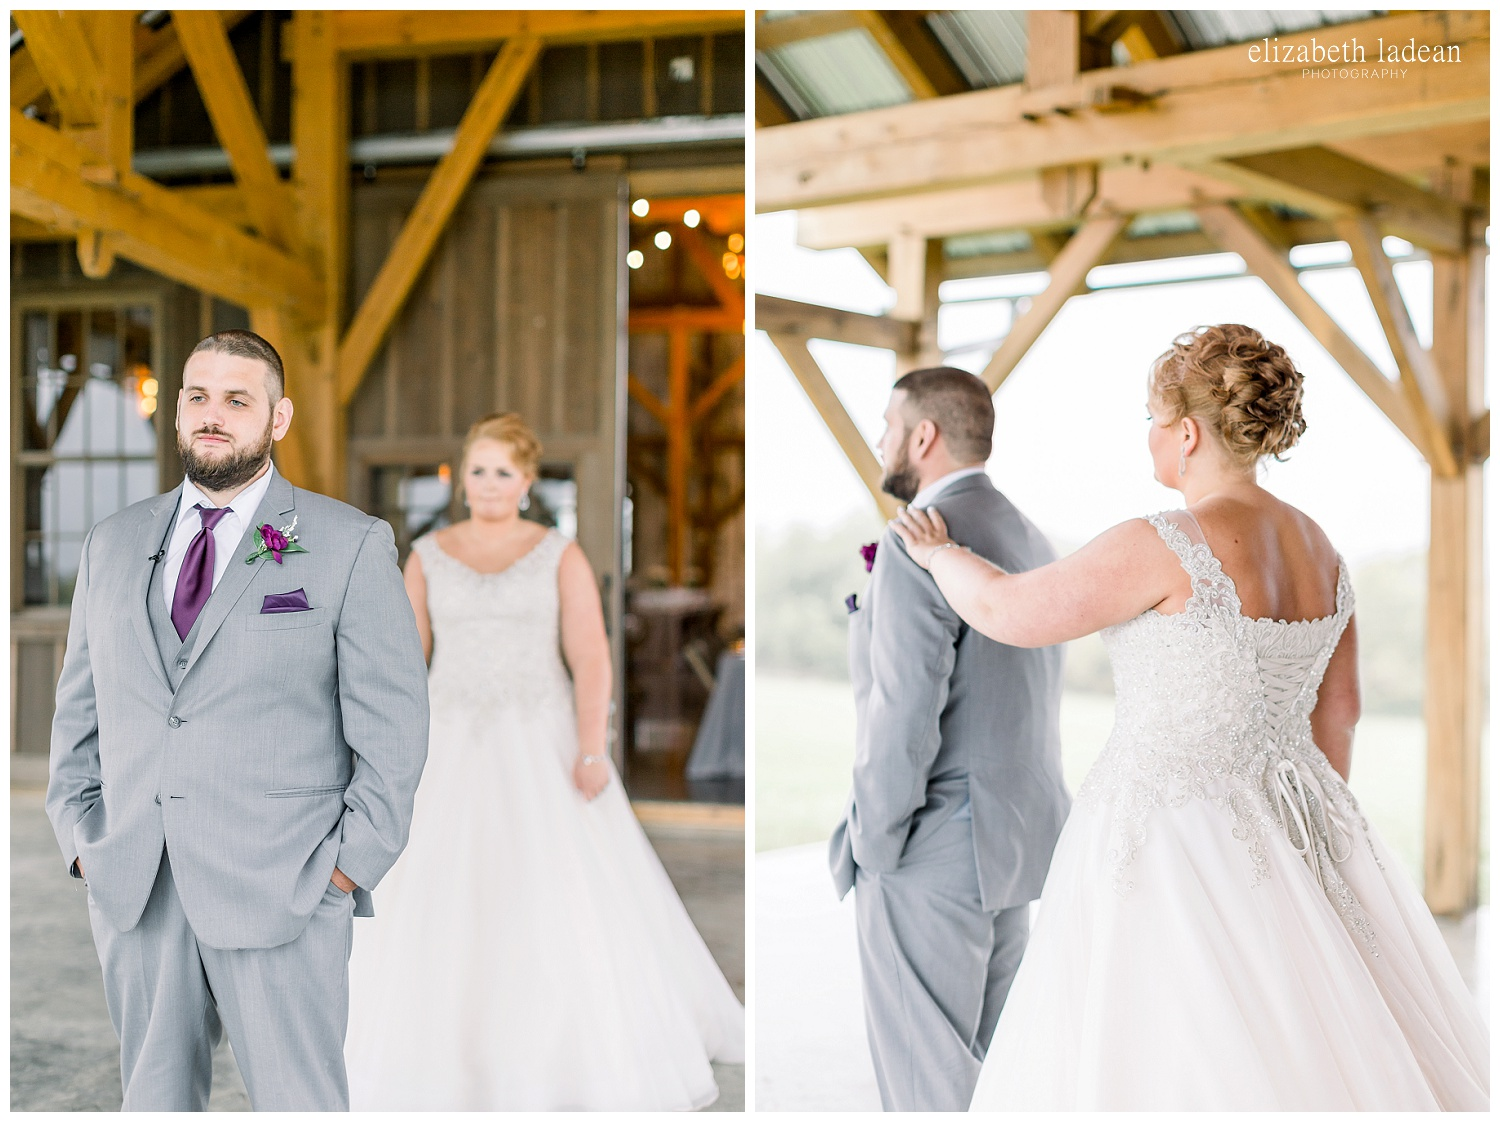 Weston-Timber-Barn-Wedding-Photography-L+A-elizabeth-ladean0photo_1858.jpg